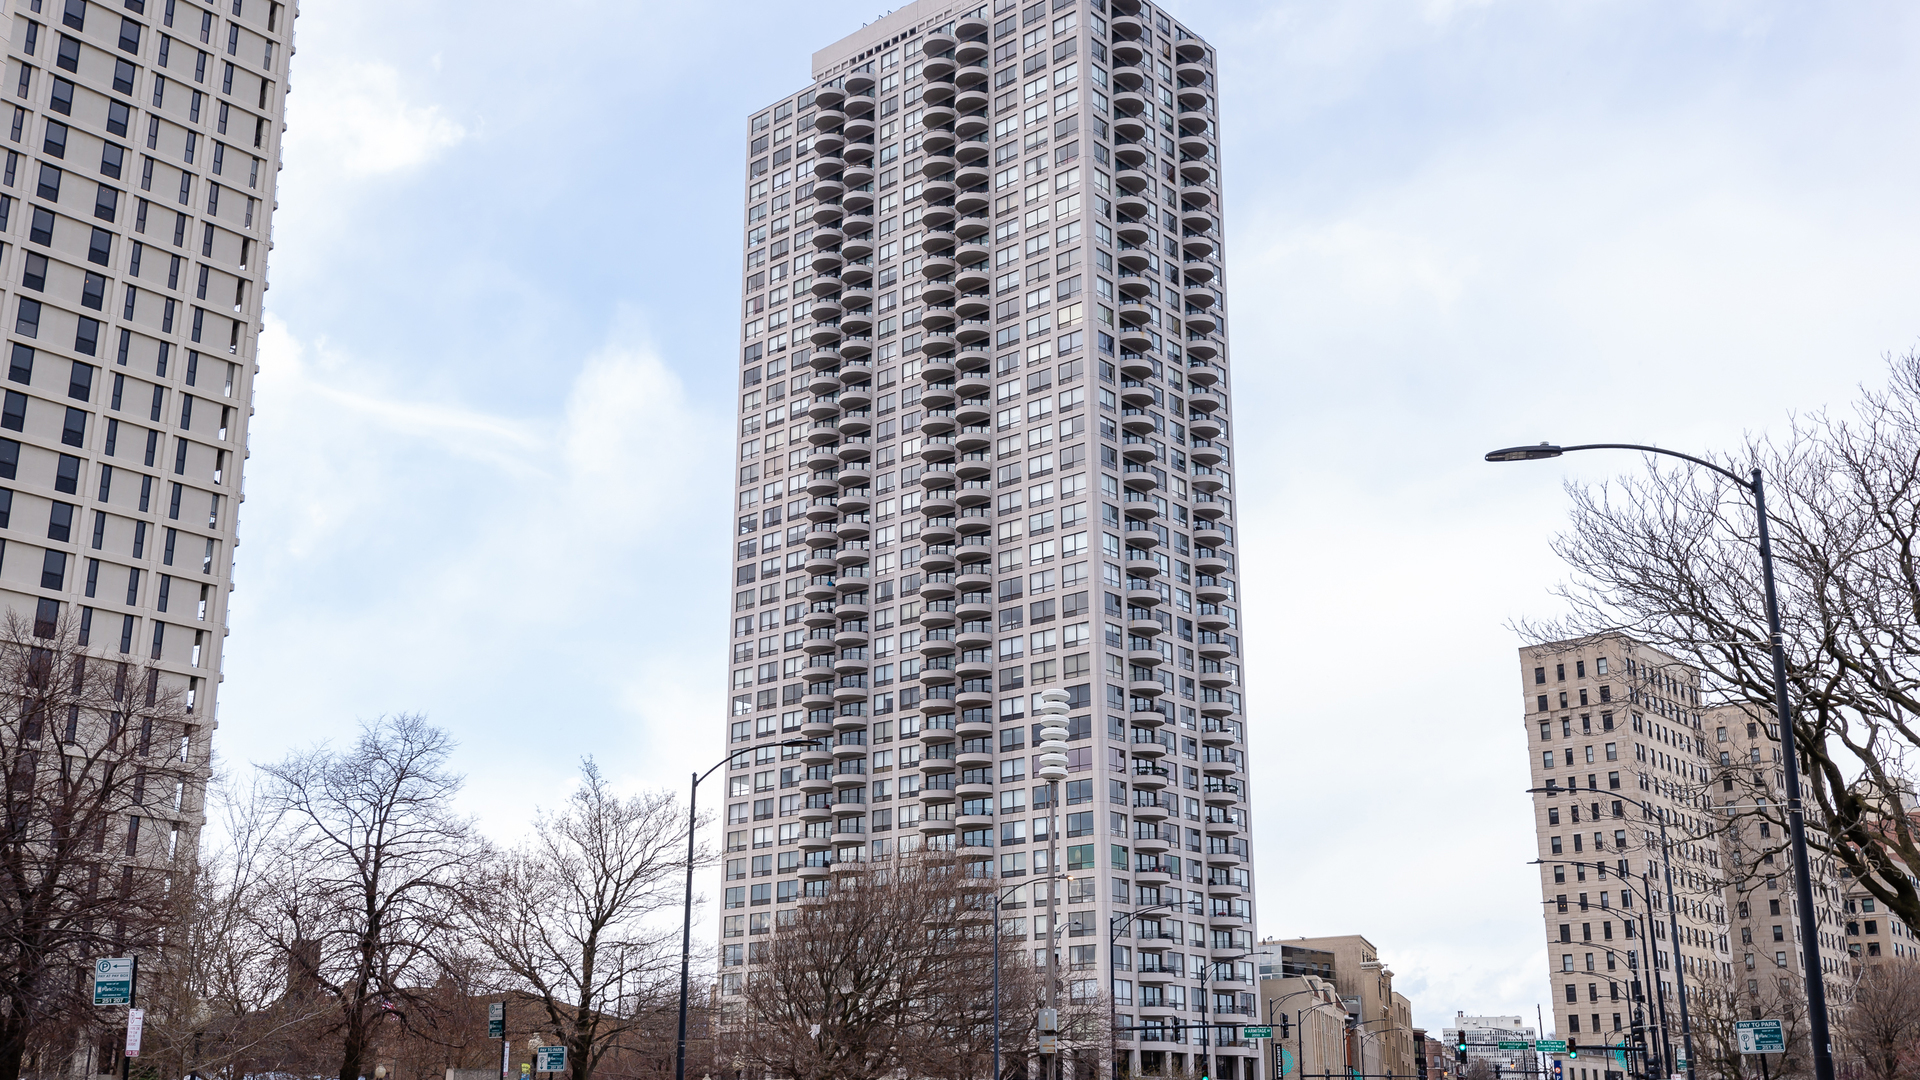 2020 N Lincoln Park West Exterior Photo